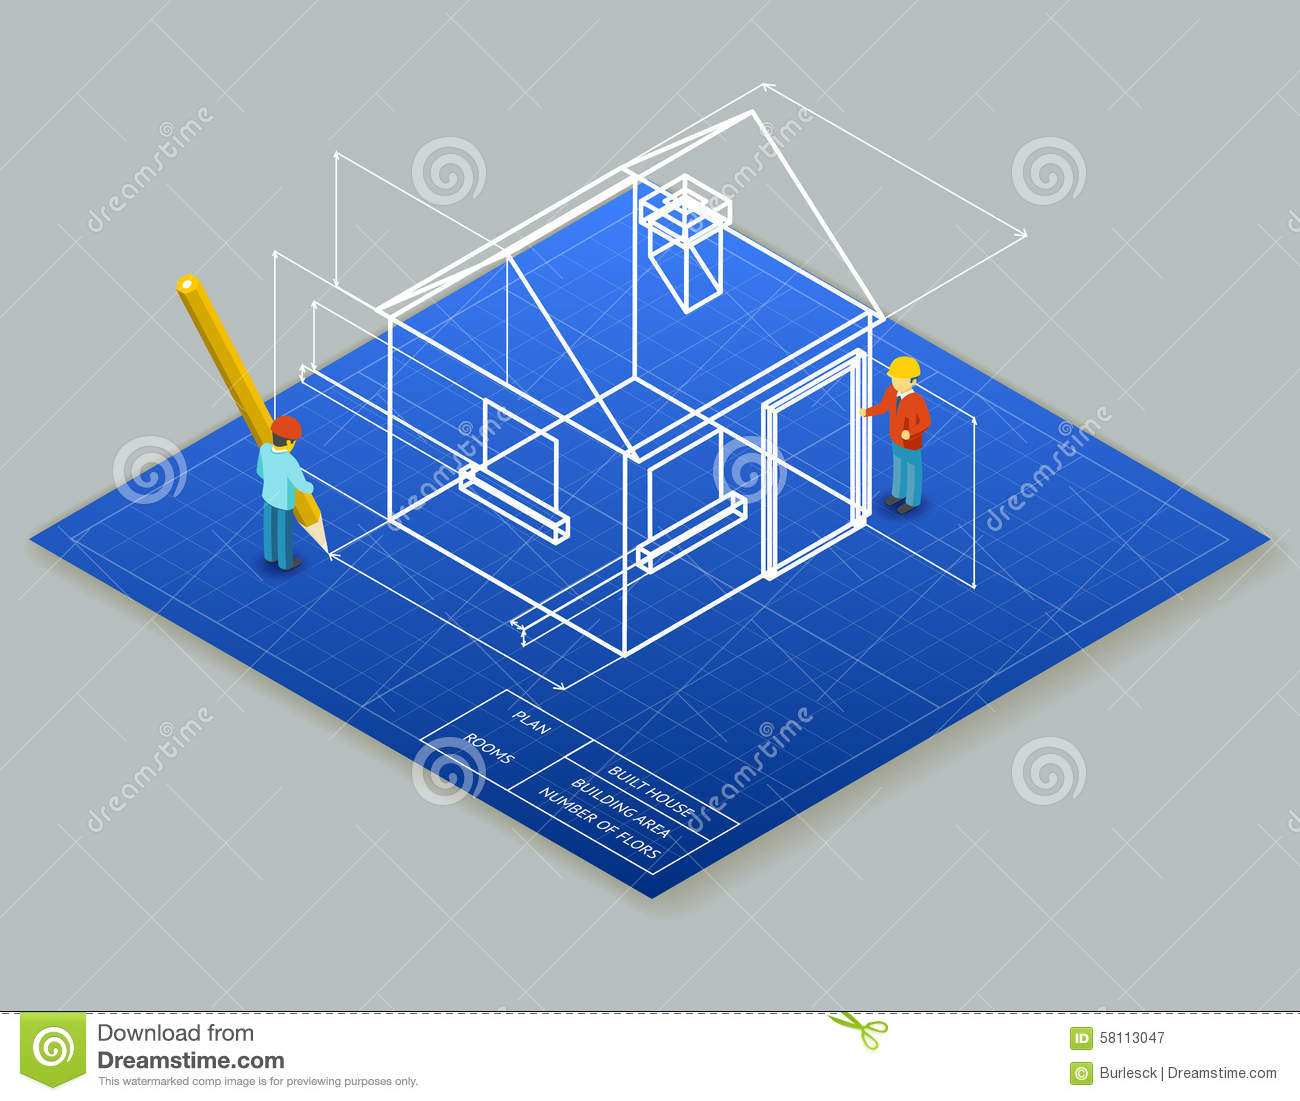 Architectural Design Blueprint Drawing 3d Stock Vector